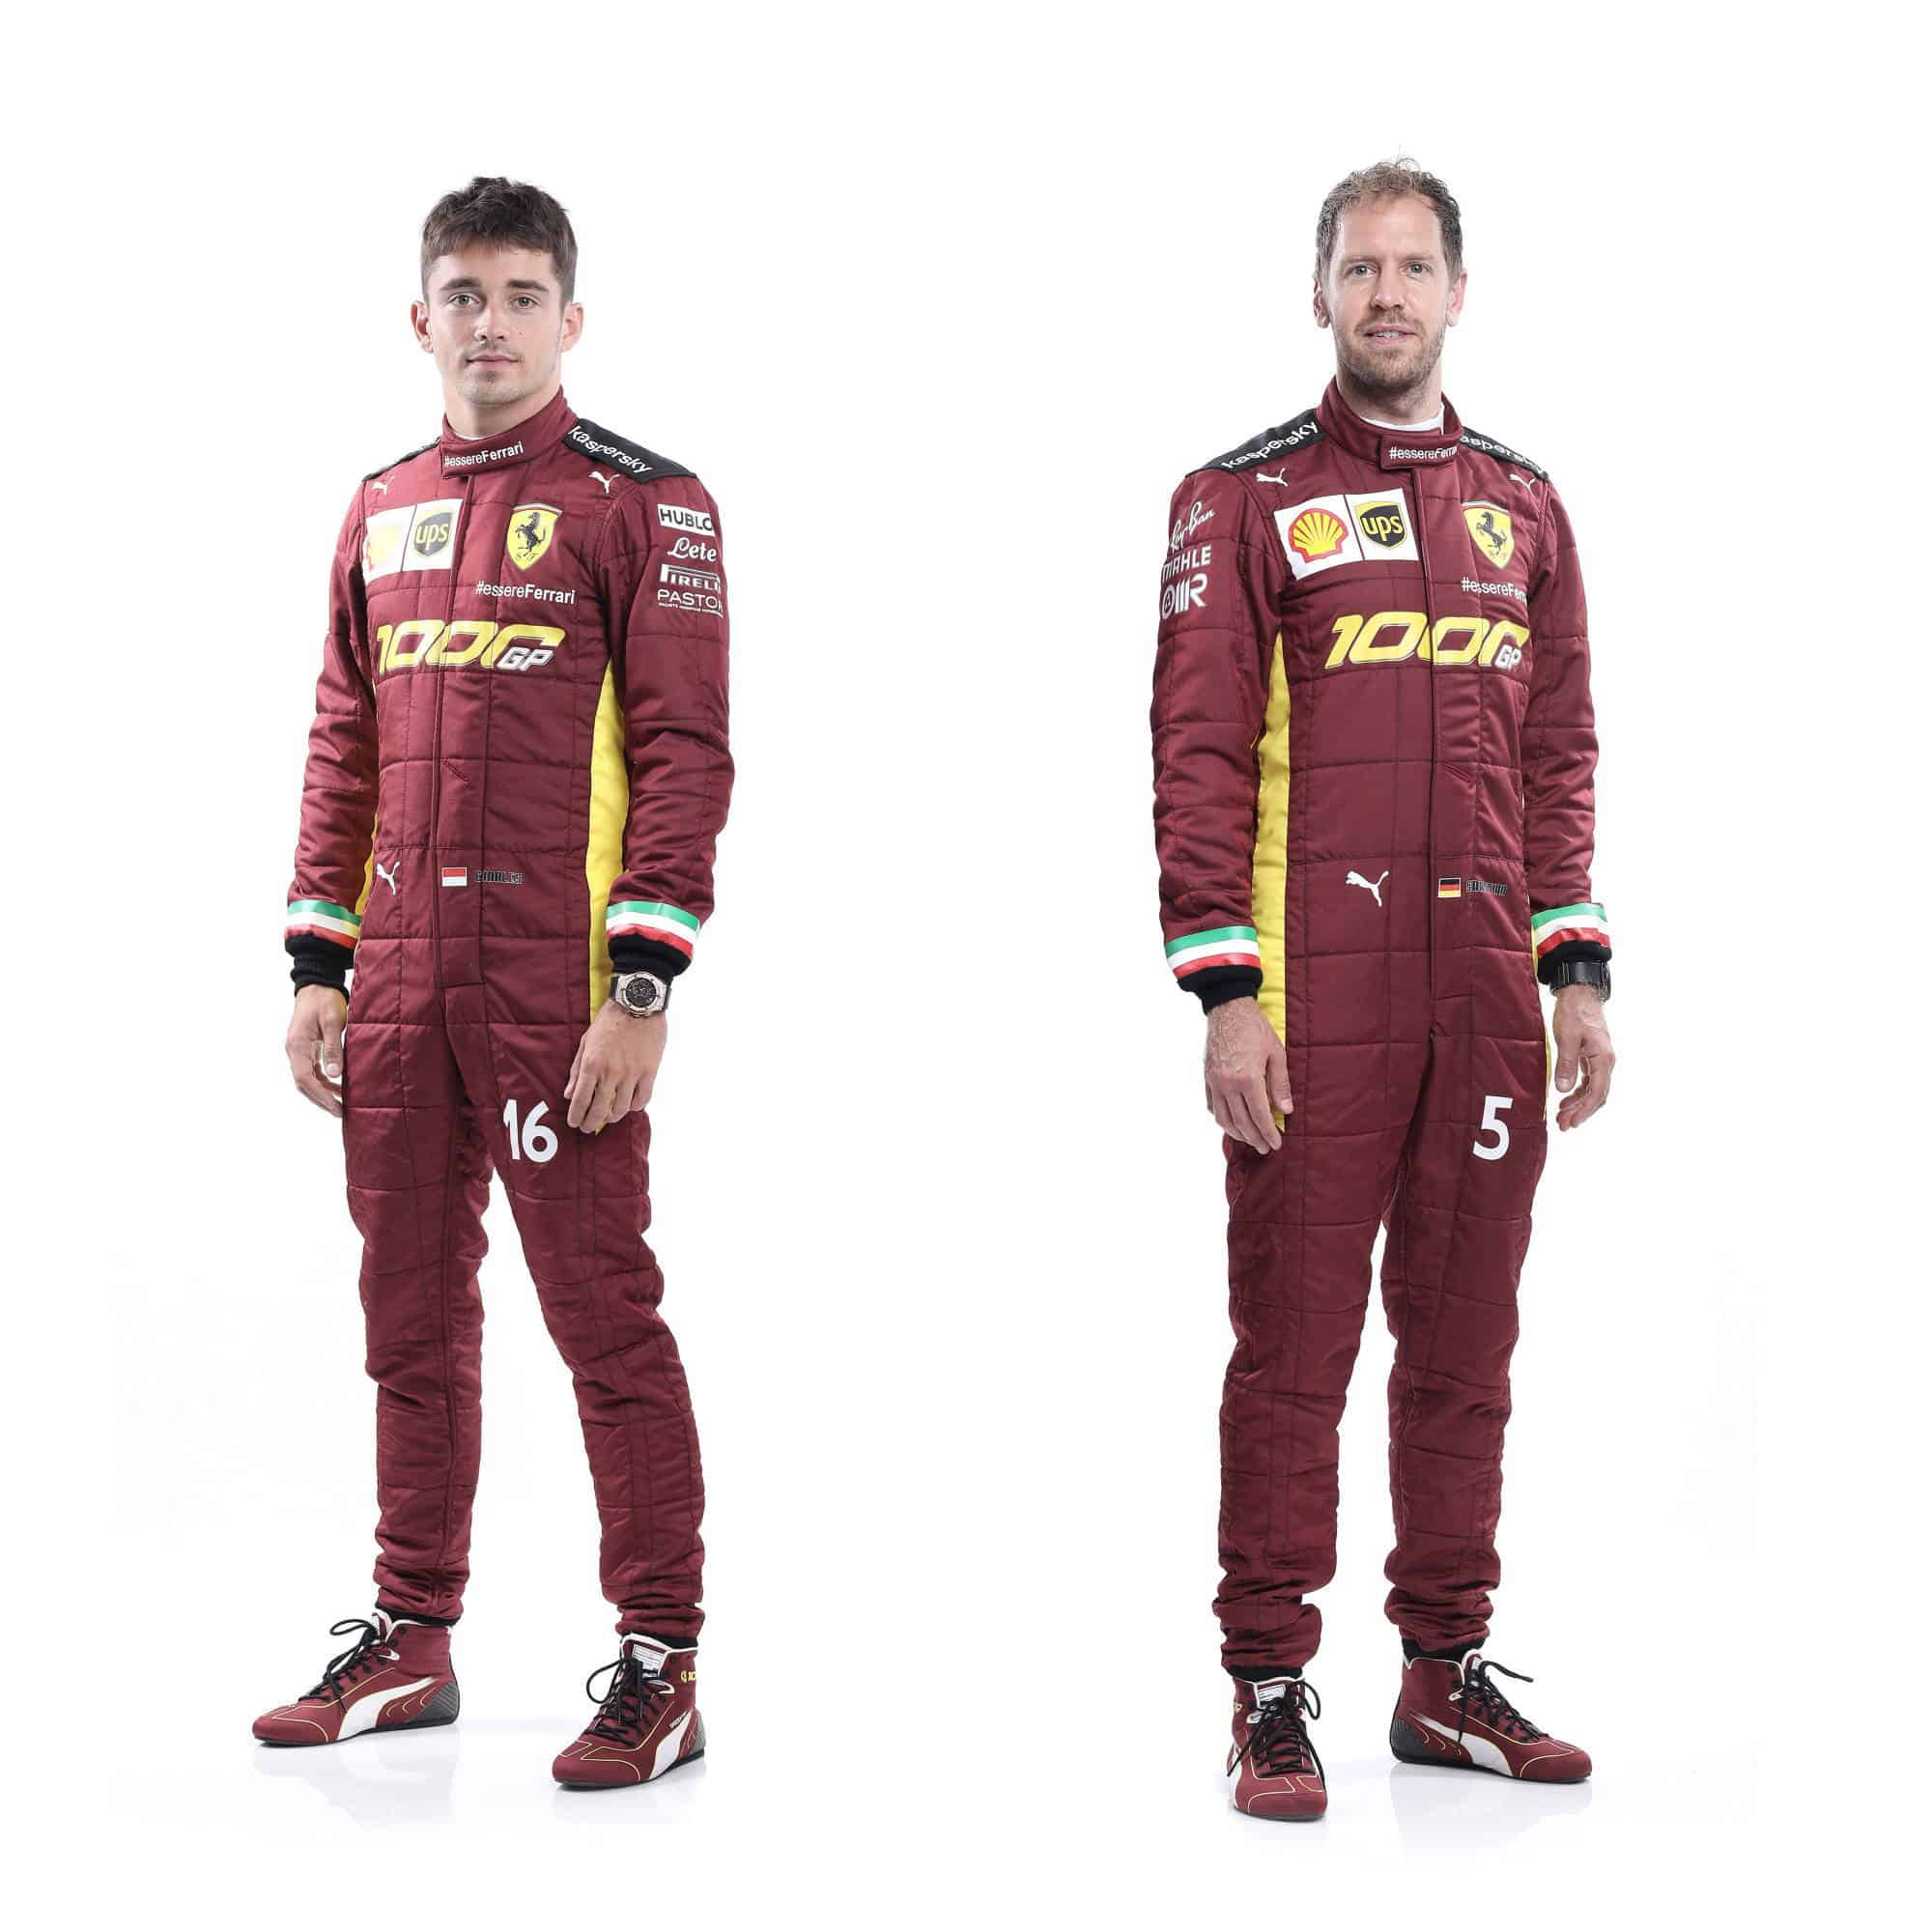 Ferrari Unveils Special Racing Suits For Their 1000th F1 Race In Mugello